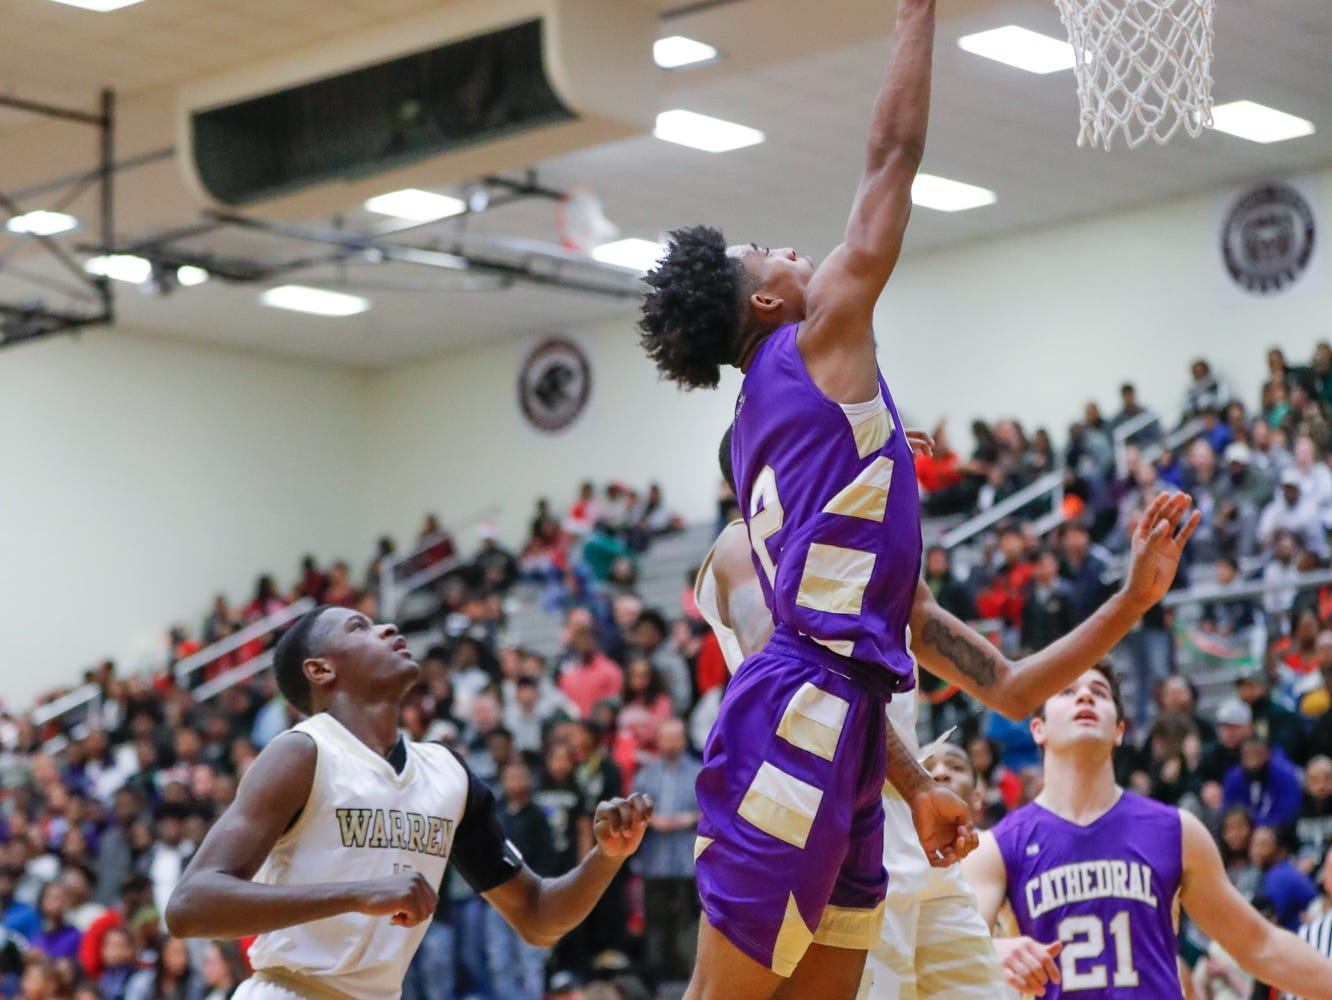 Cathedral High School's guard Armaan Franklin (2) hits a layup during a varsity boys basketball game between Cathedral High School and Warren Central High School at Warren Central on Friday, Dec. 7, 2018.